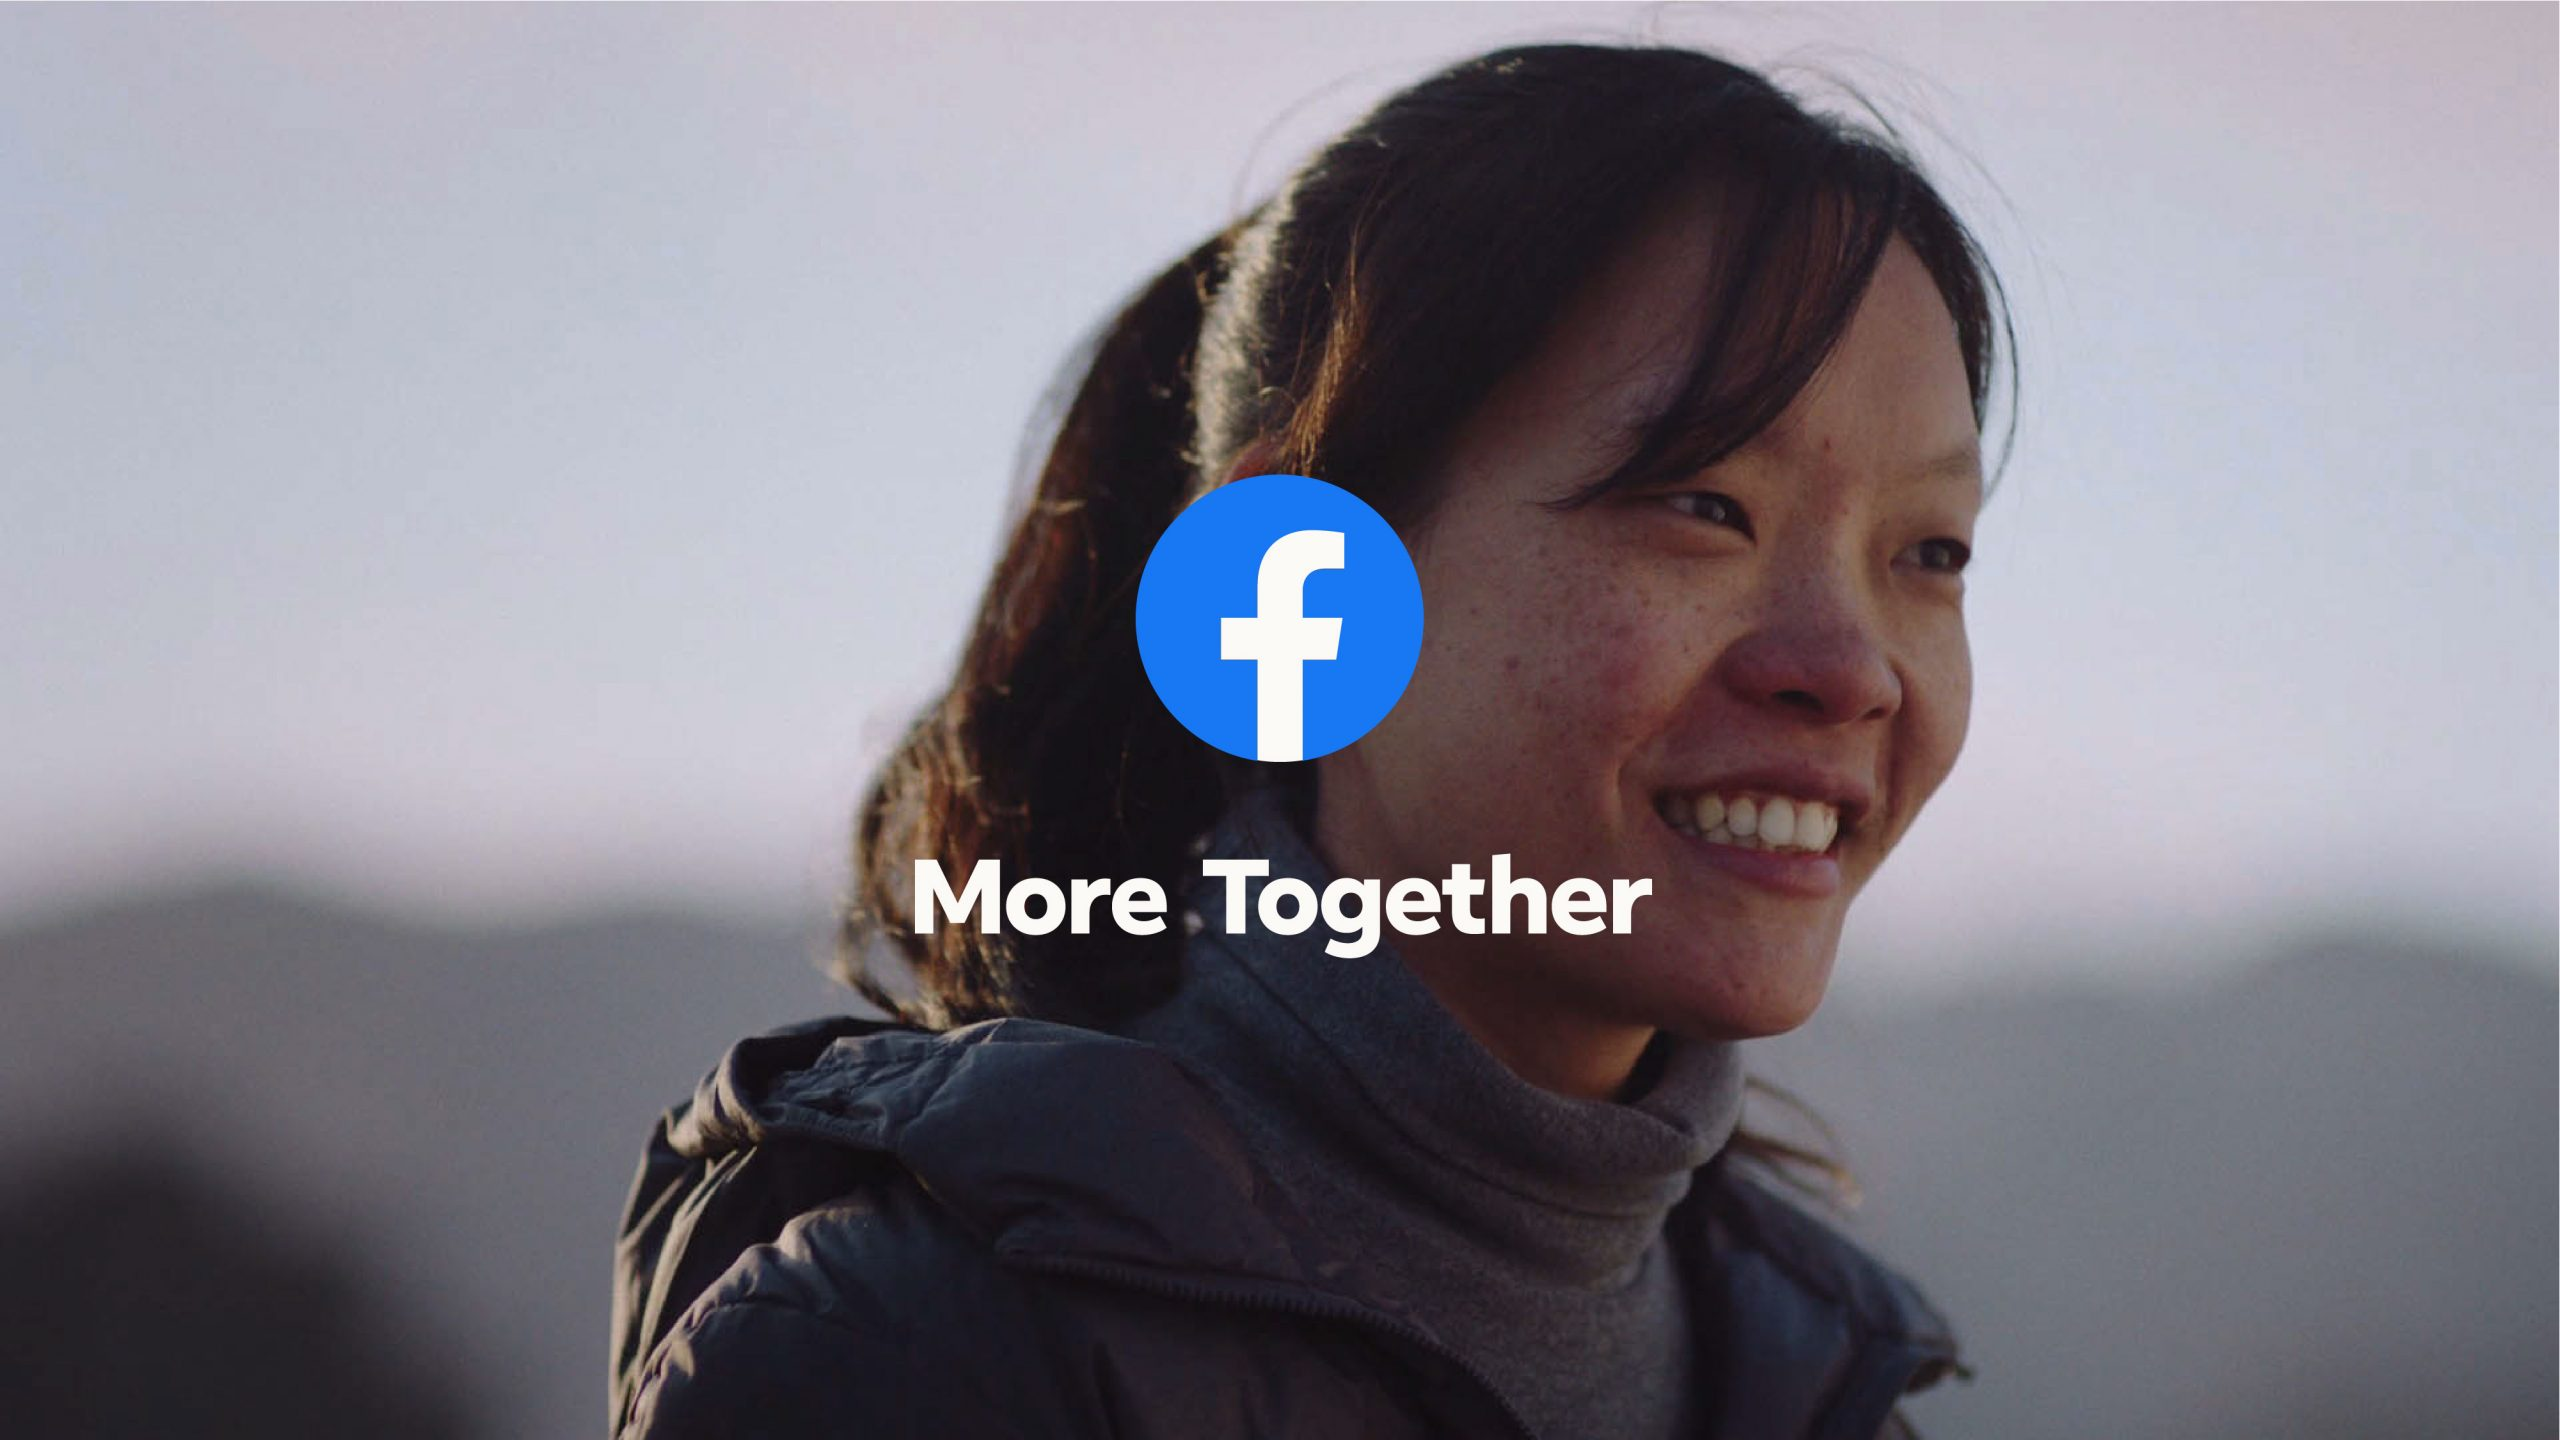 Facebook comes up with new 'More Together' campaign